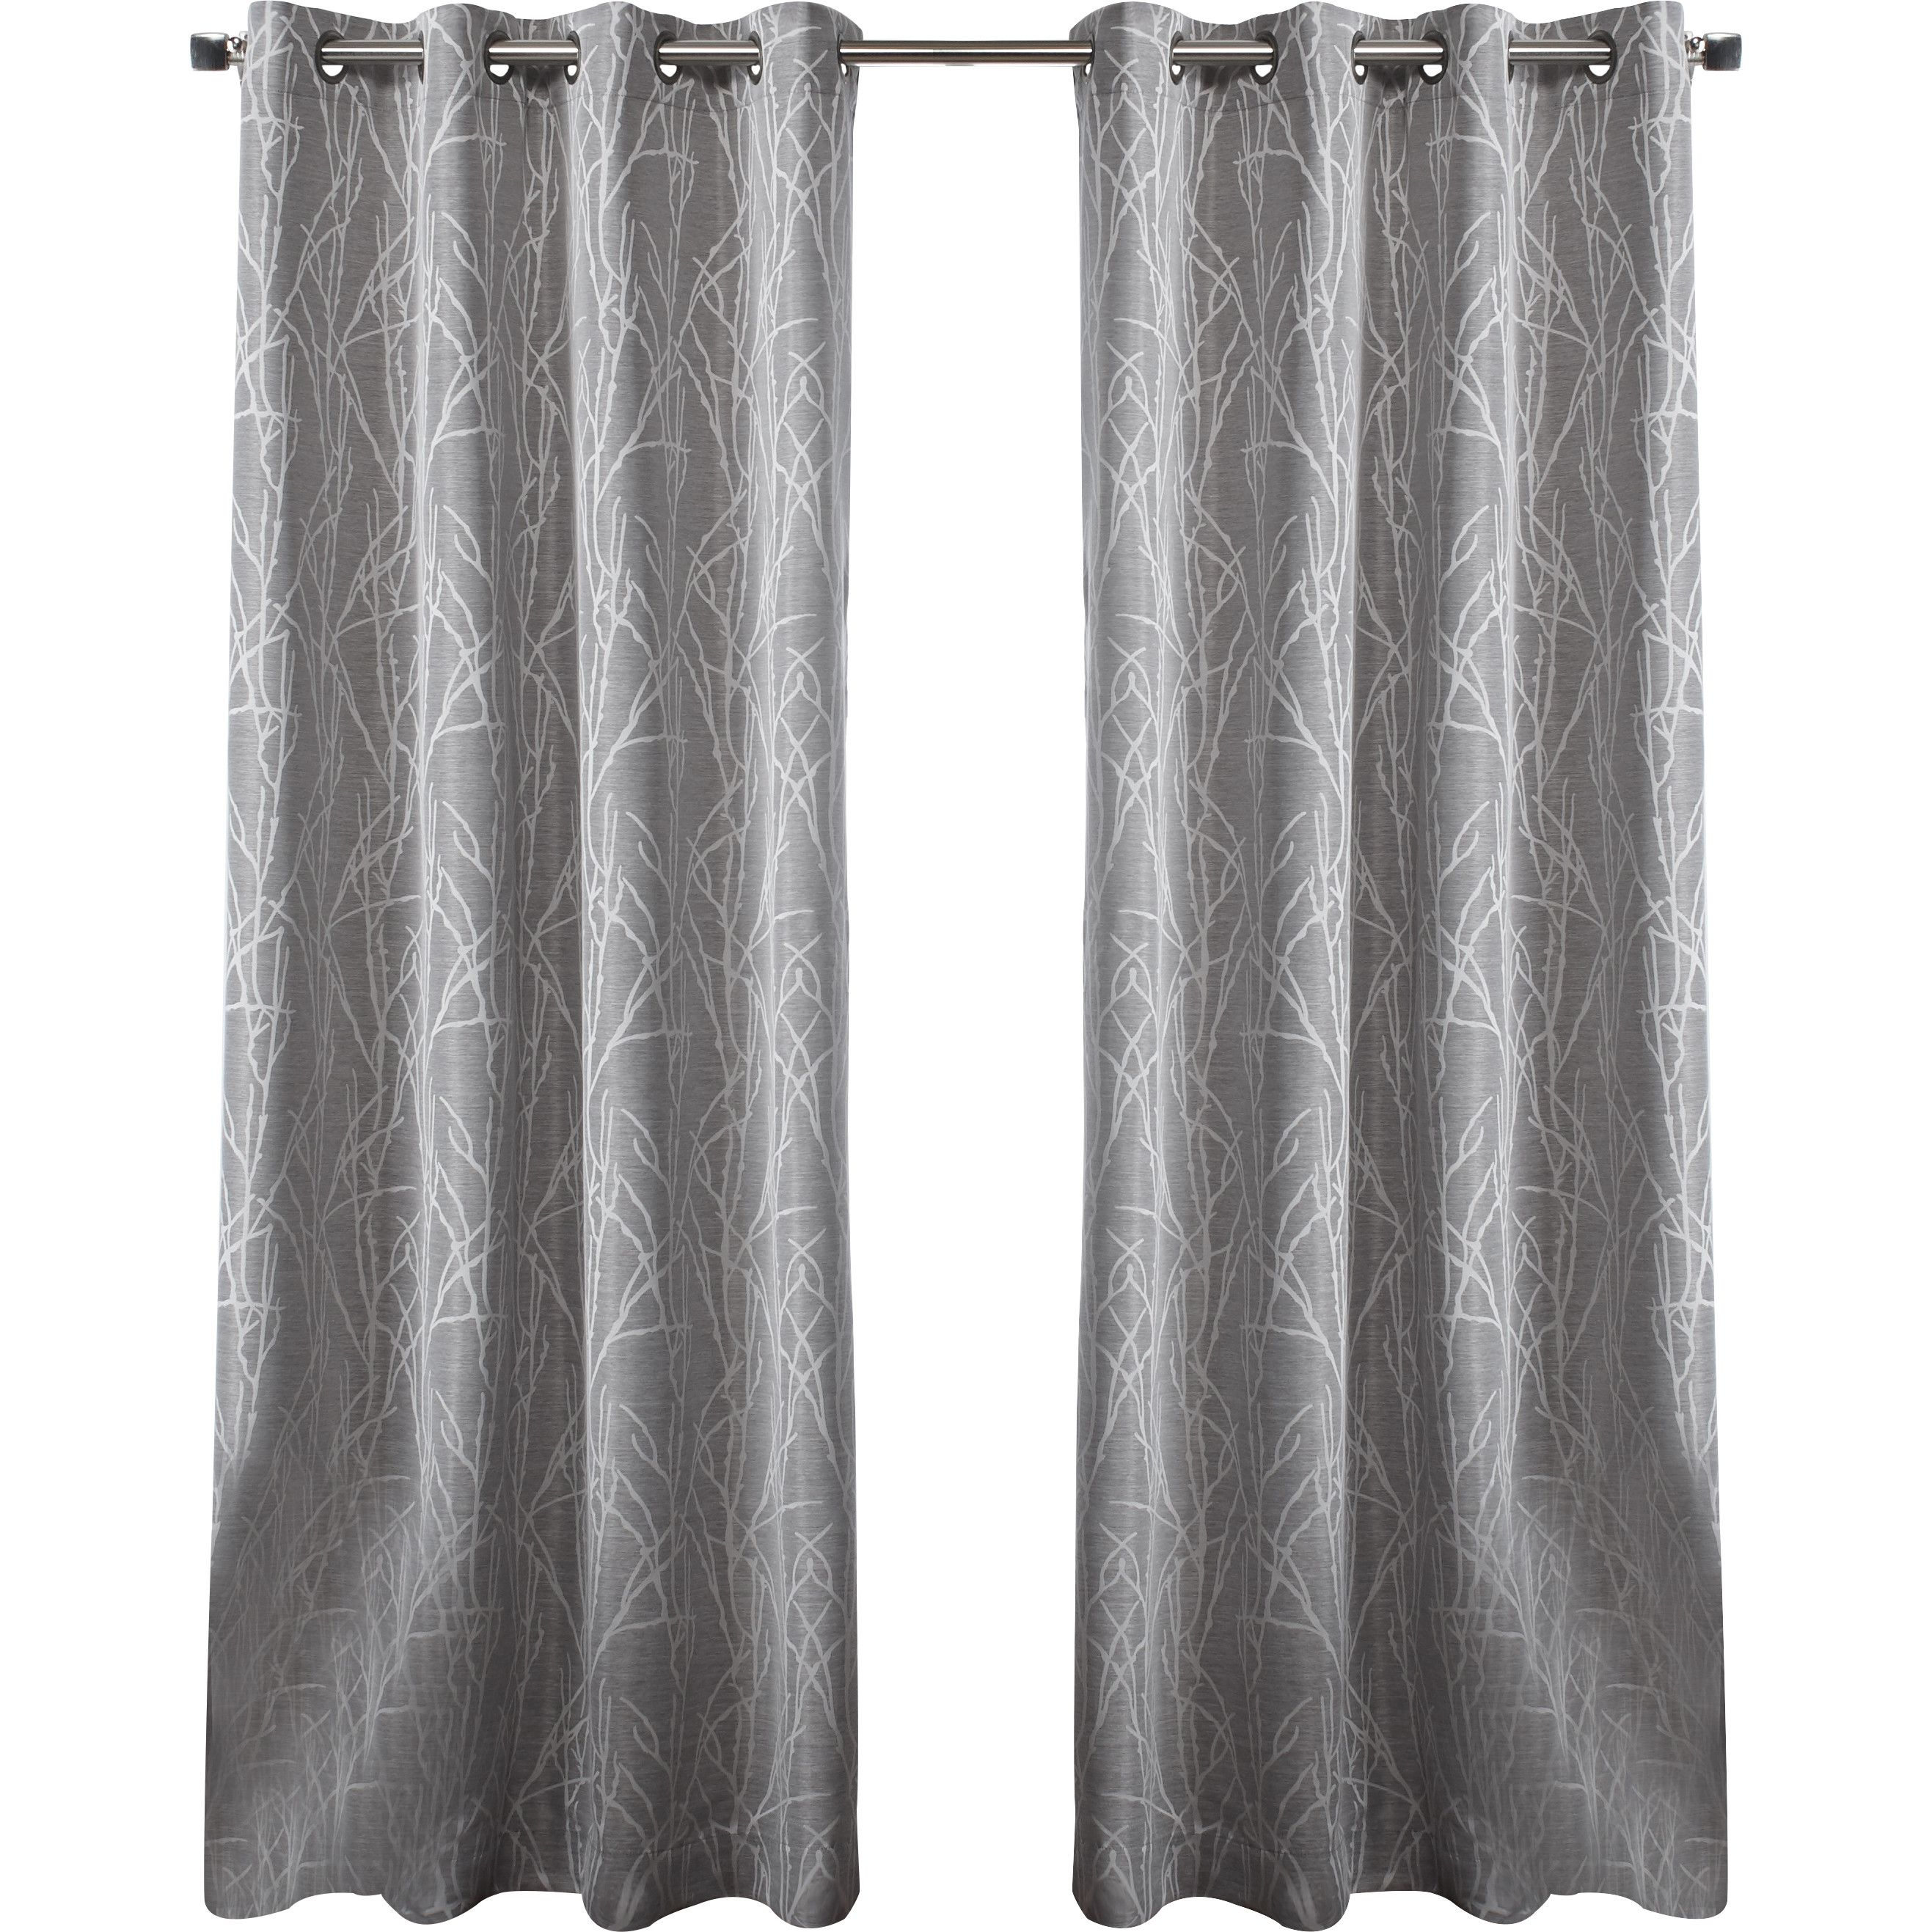 Customer Image Zoomed Grommet Curtains Curtains Panel Curtains